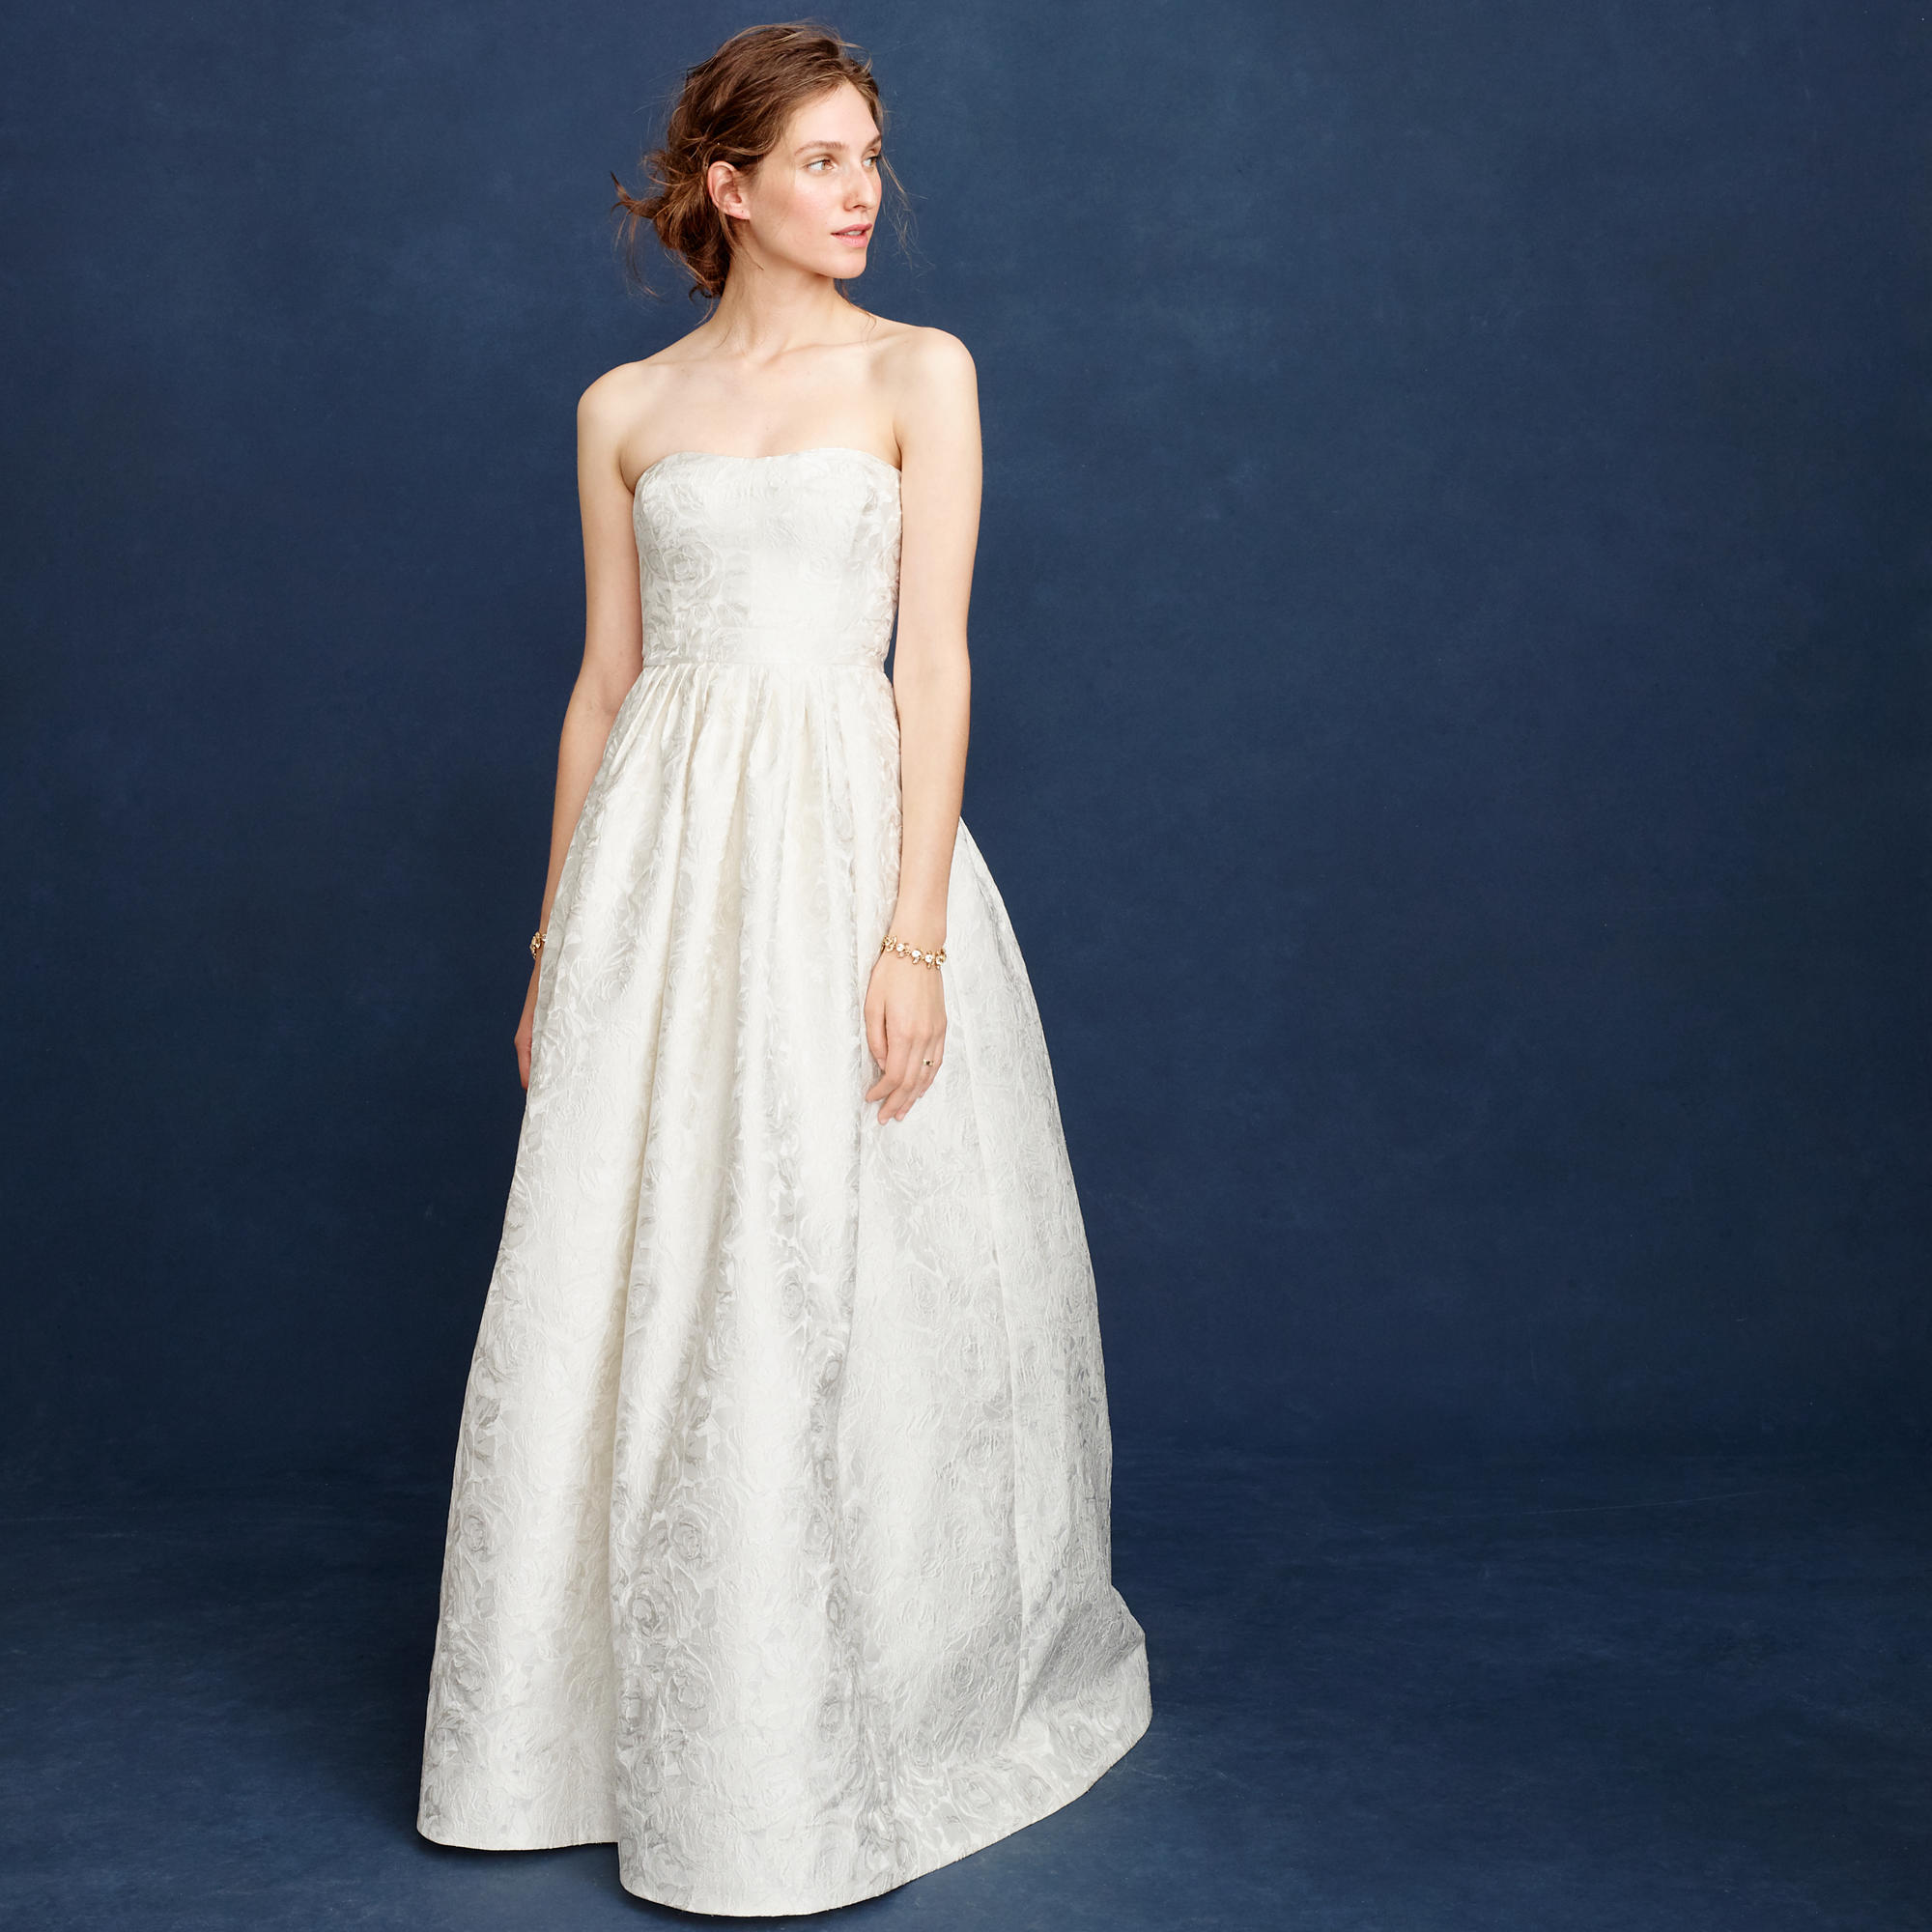 Ella gown wedding dresses j crew for J crew wedding dresses